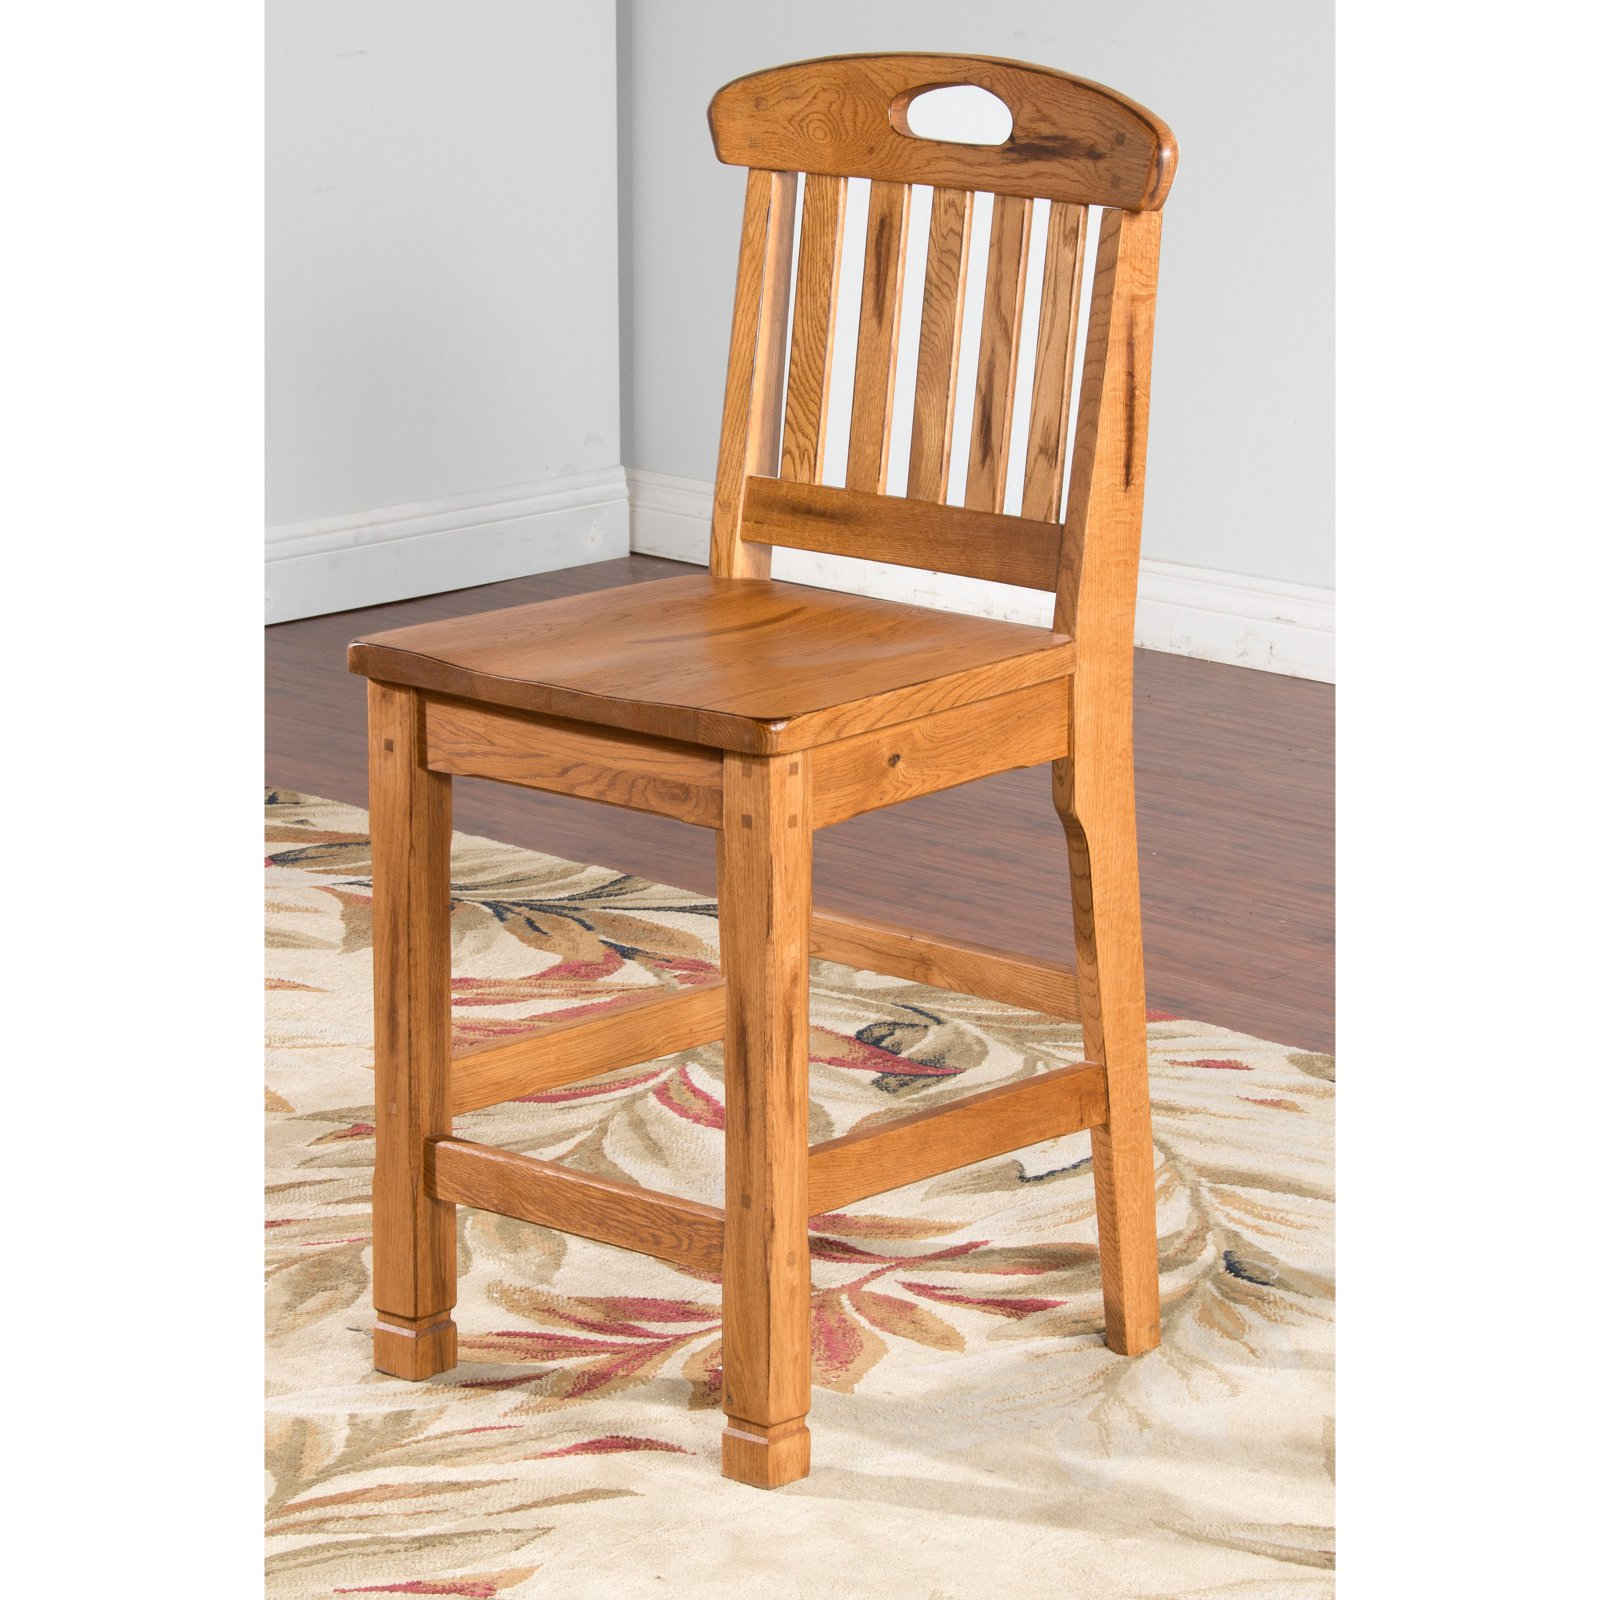 Sunny Designs Sedona 24 in. Slat Back Counter Stool